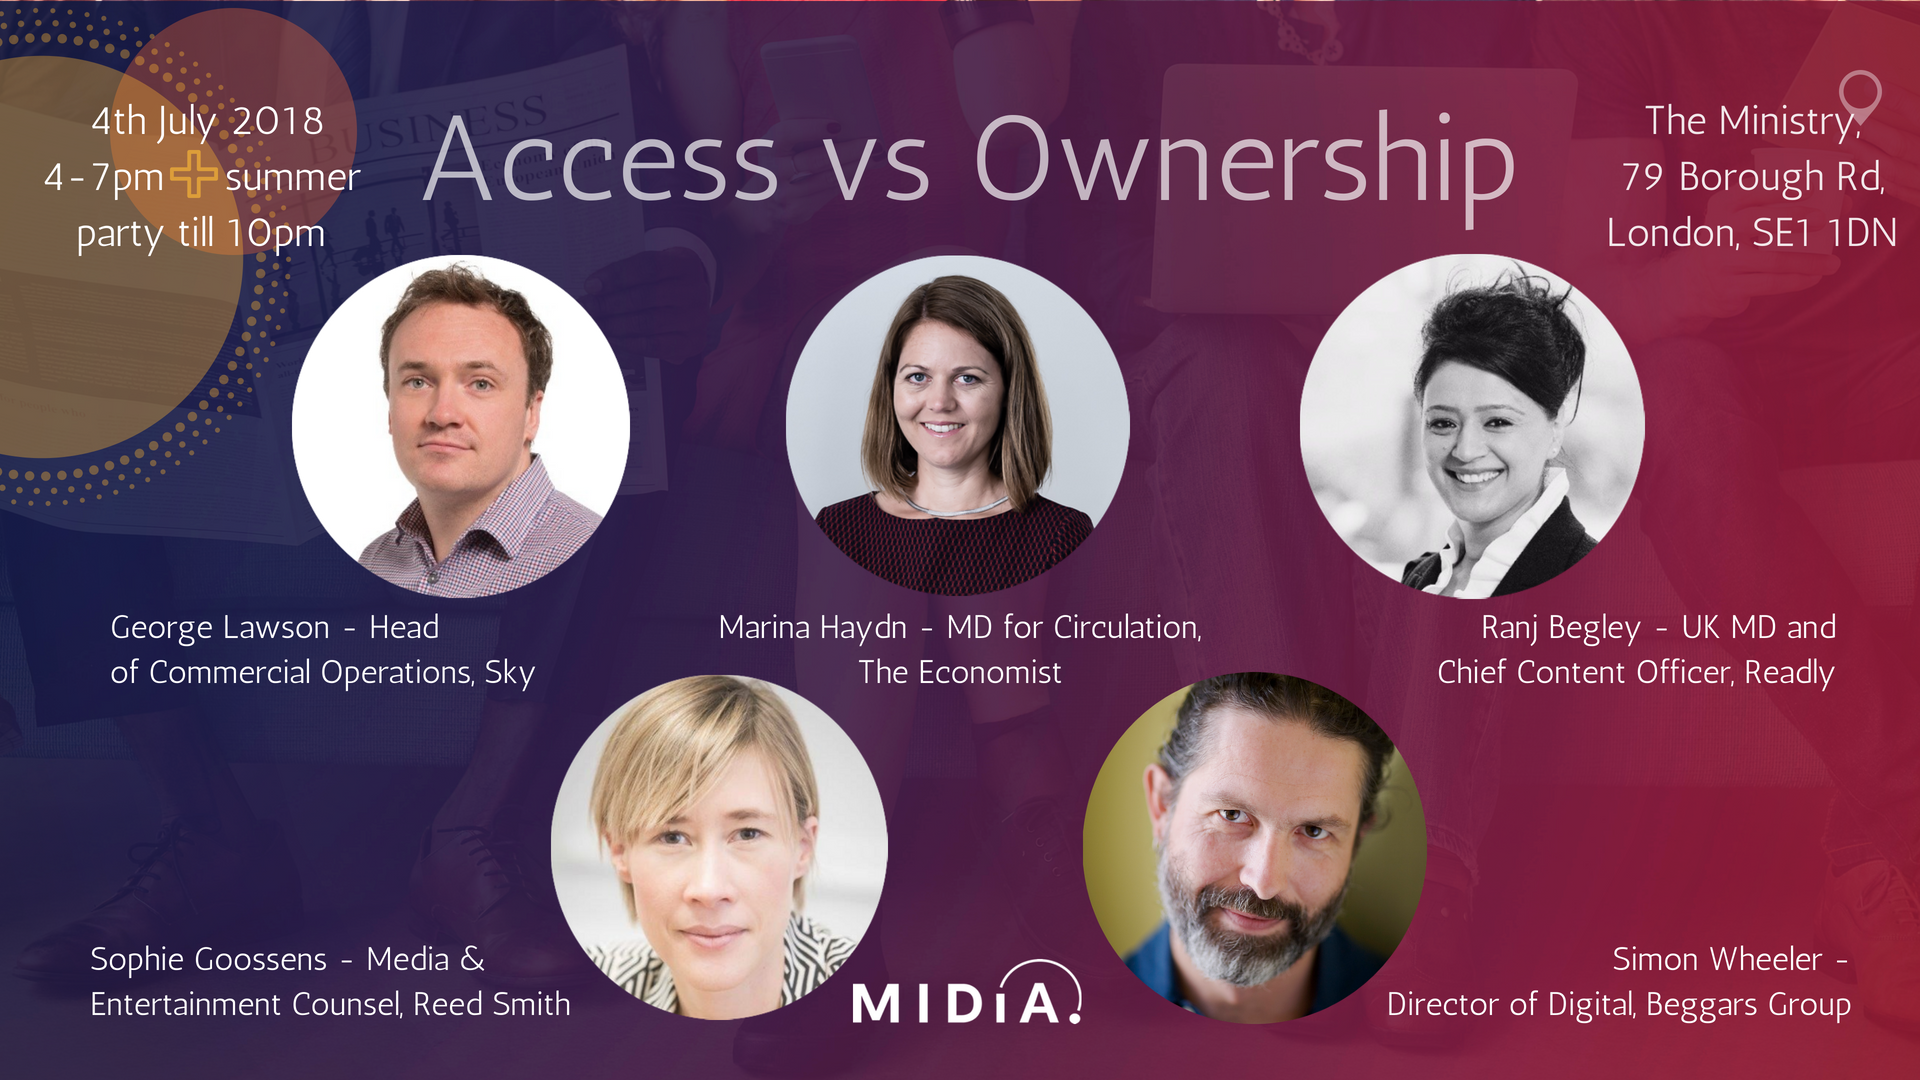 Cover image for Beggars Group, Sky, The Economist, Plus more Speakers at the Access vs Ownership Industry Event